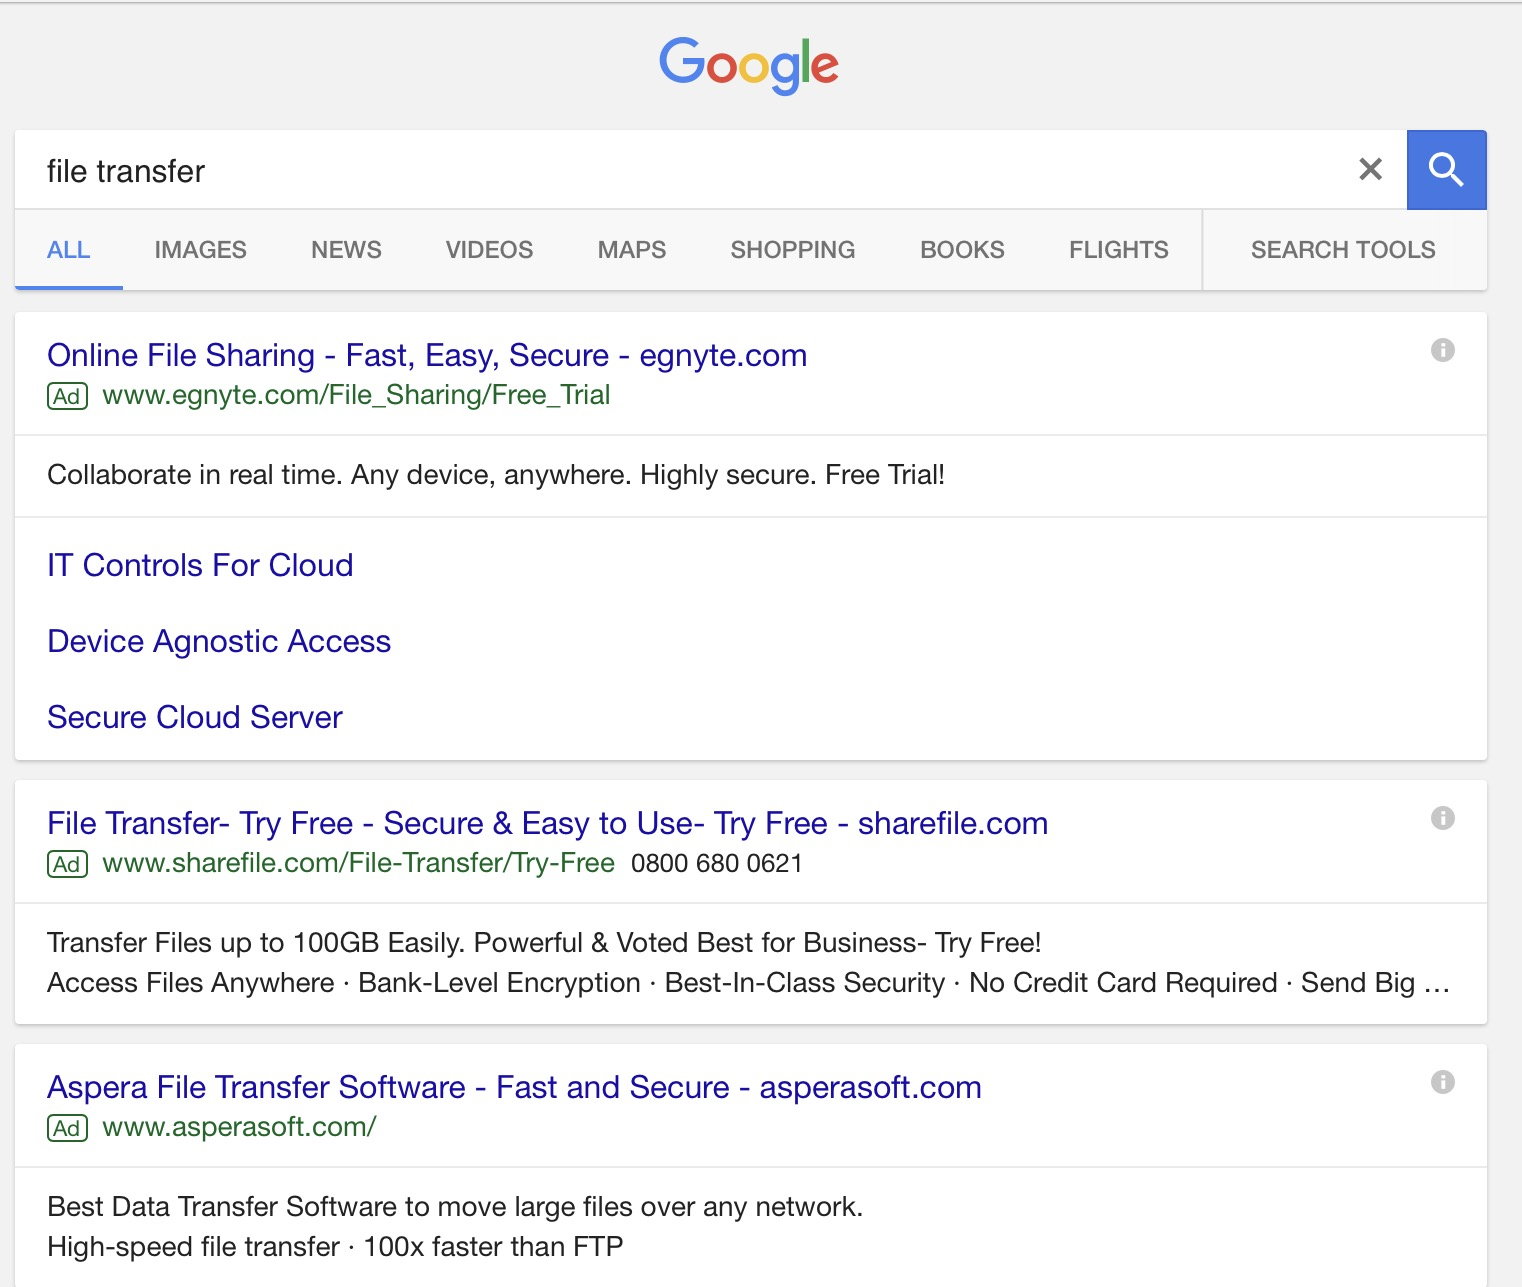 PPC search result for file transfer